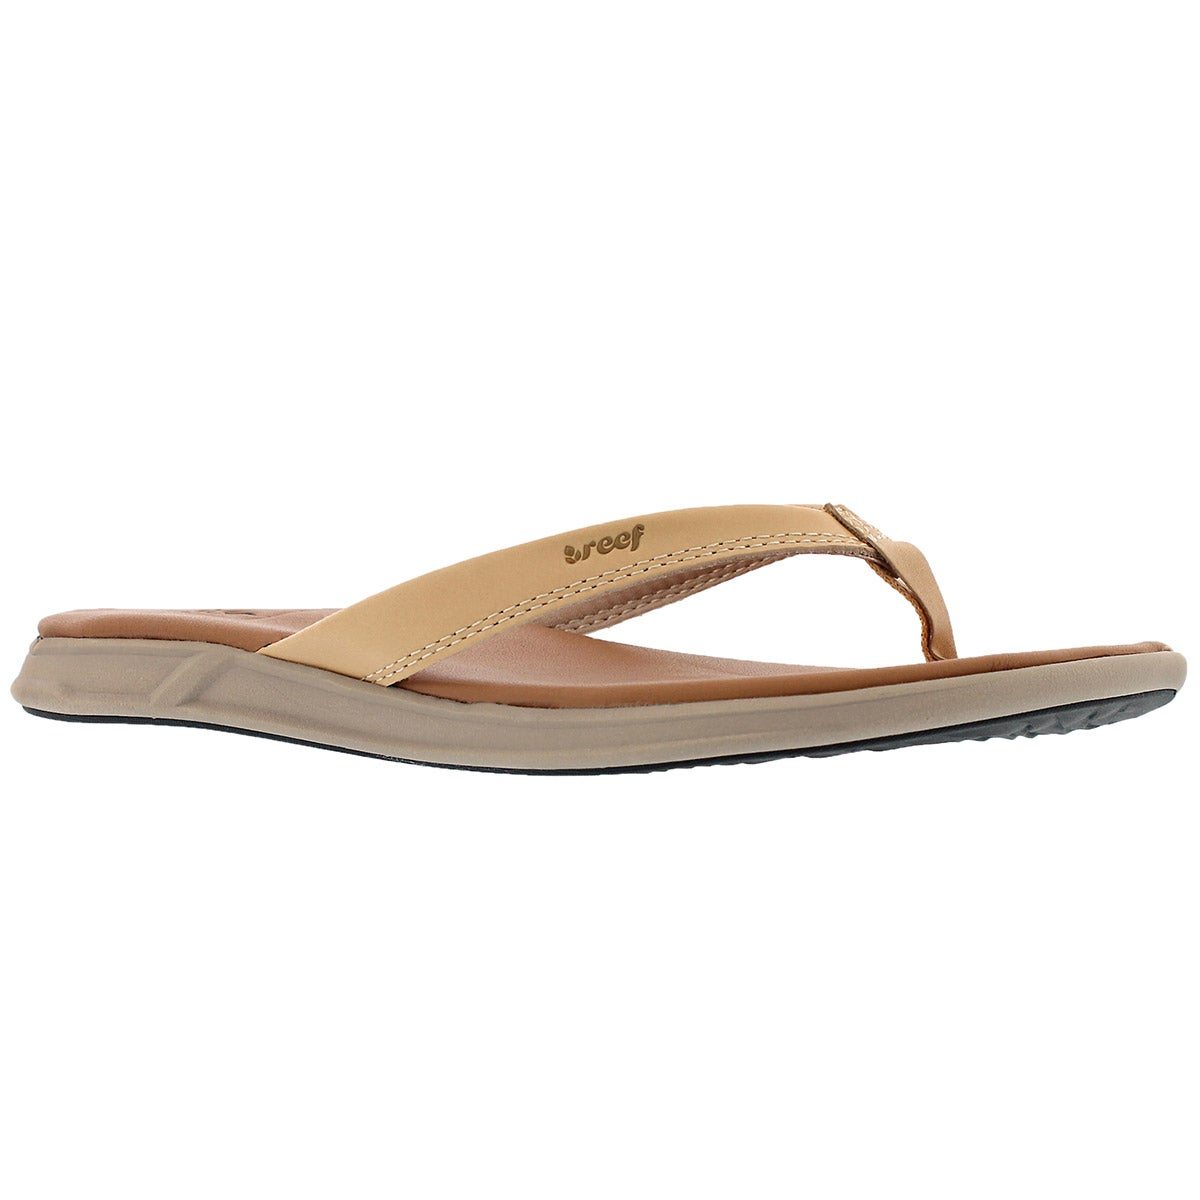 Women's REEF ROVER LE natural  thong sandals